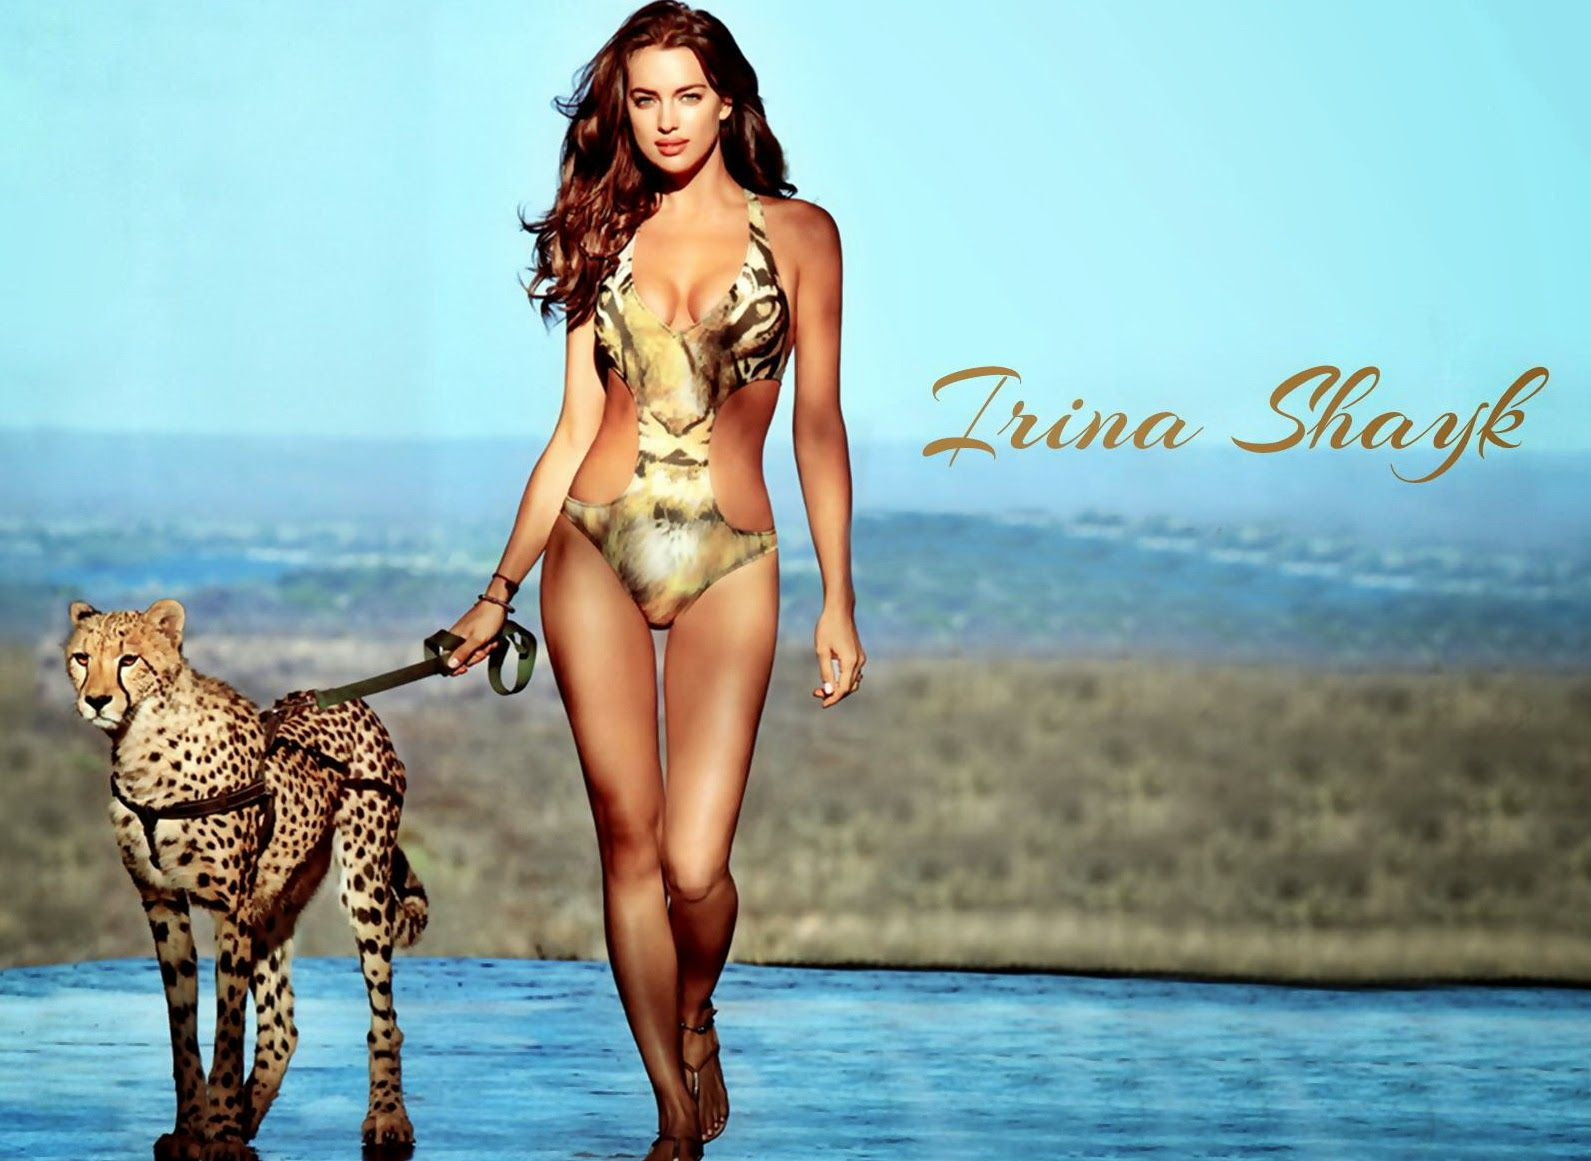 irina shayk hd wallpapers | drawing | pinterest | irina shayk, hd